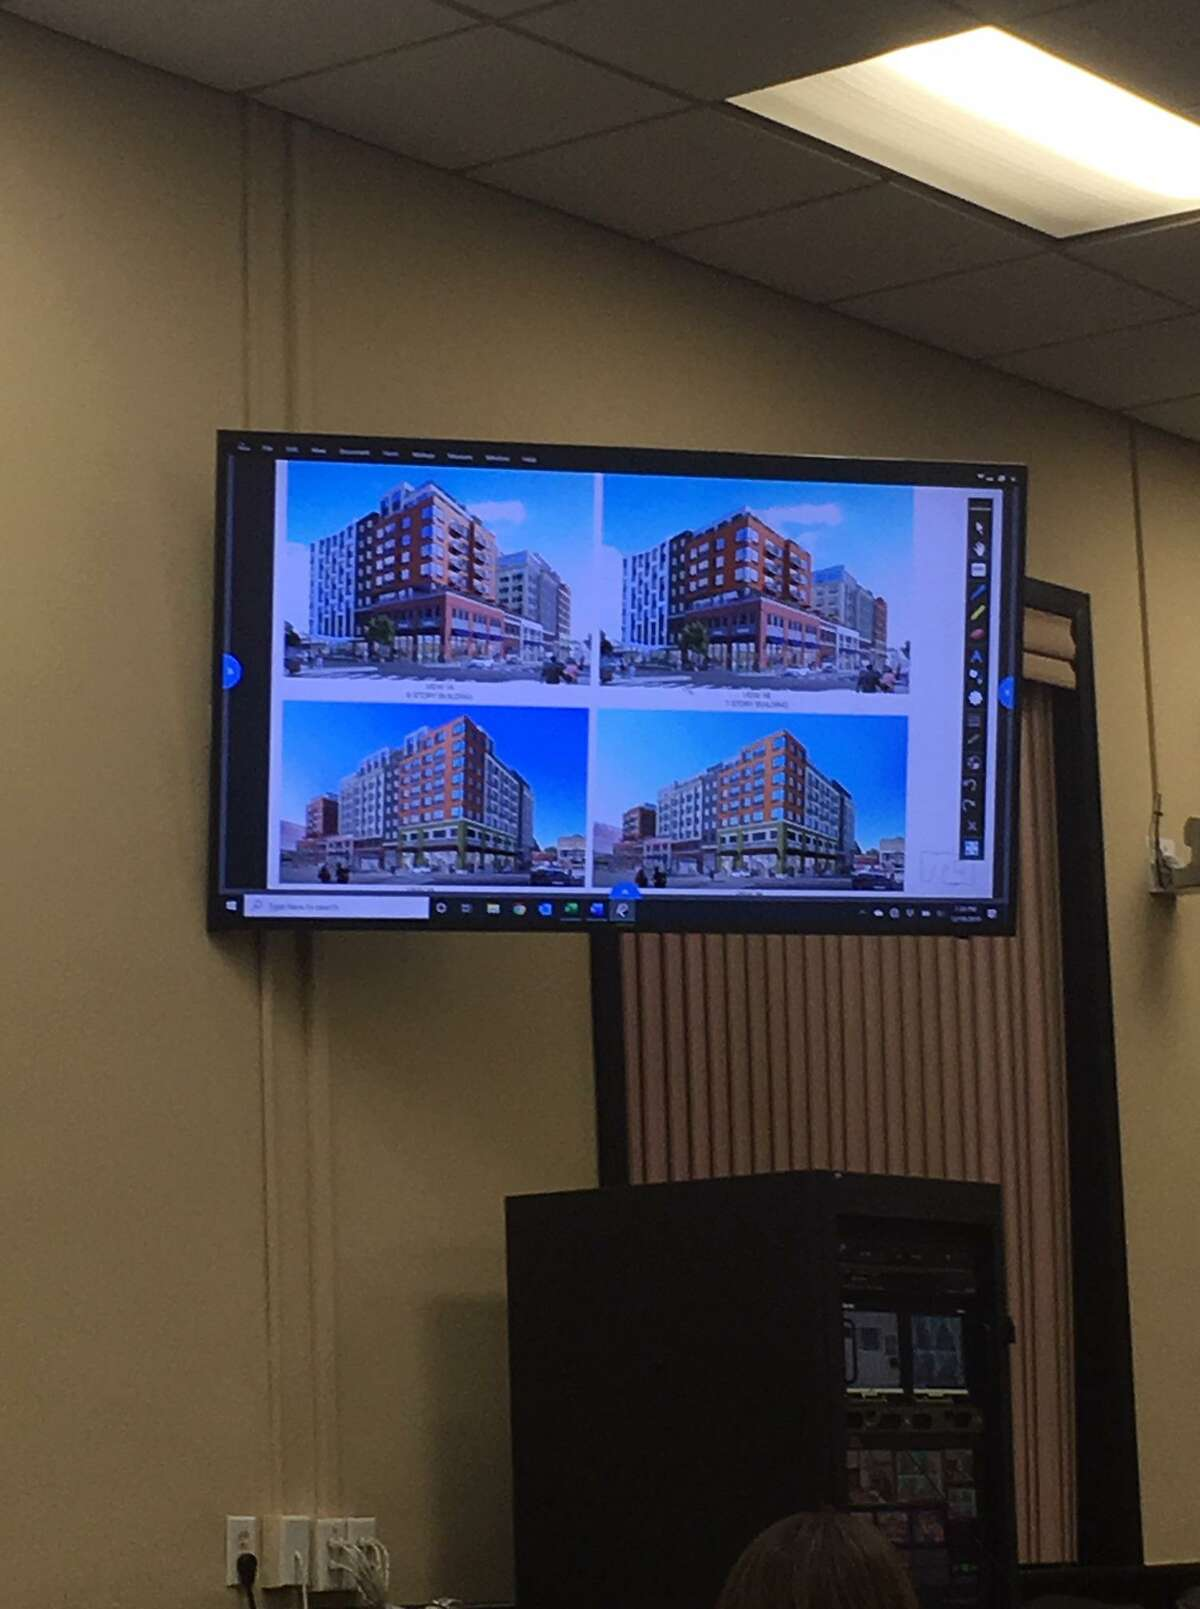 A scaled-back version of a planned development project in Port Chester, N.Y., was shown to the public.